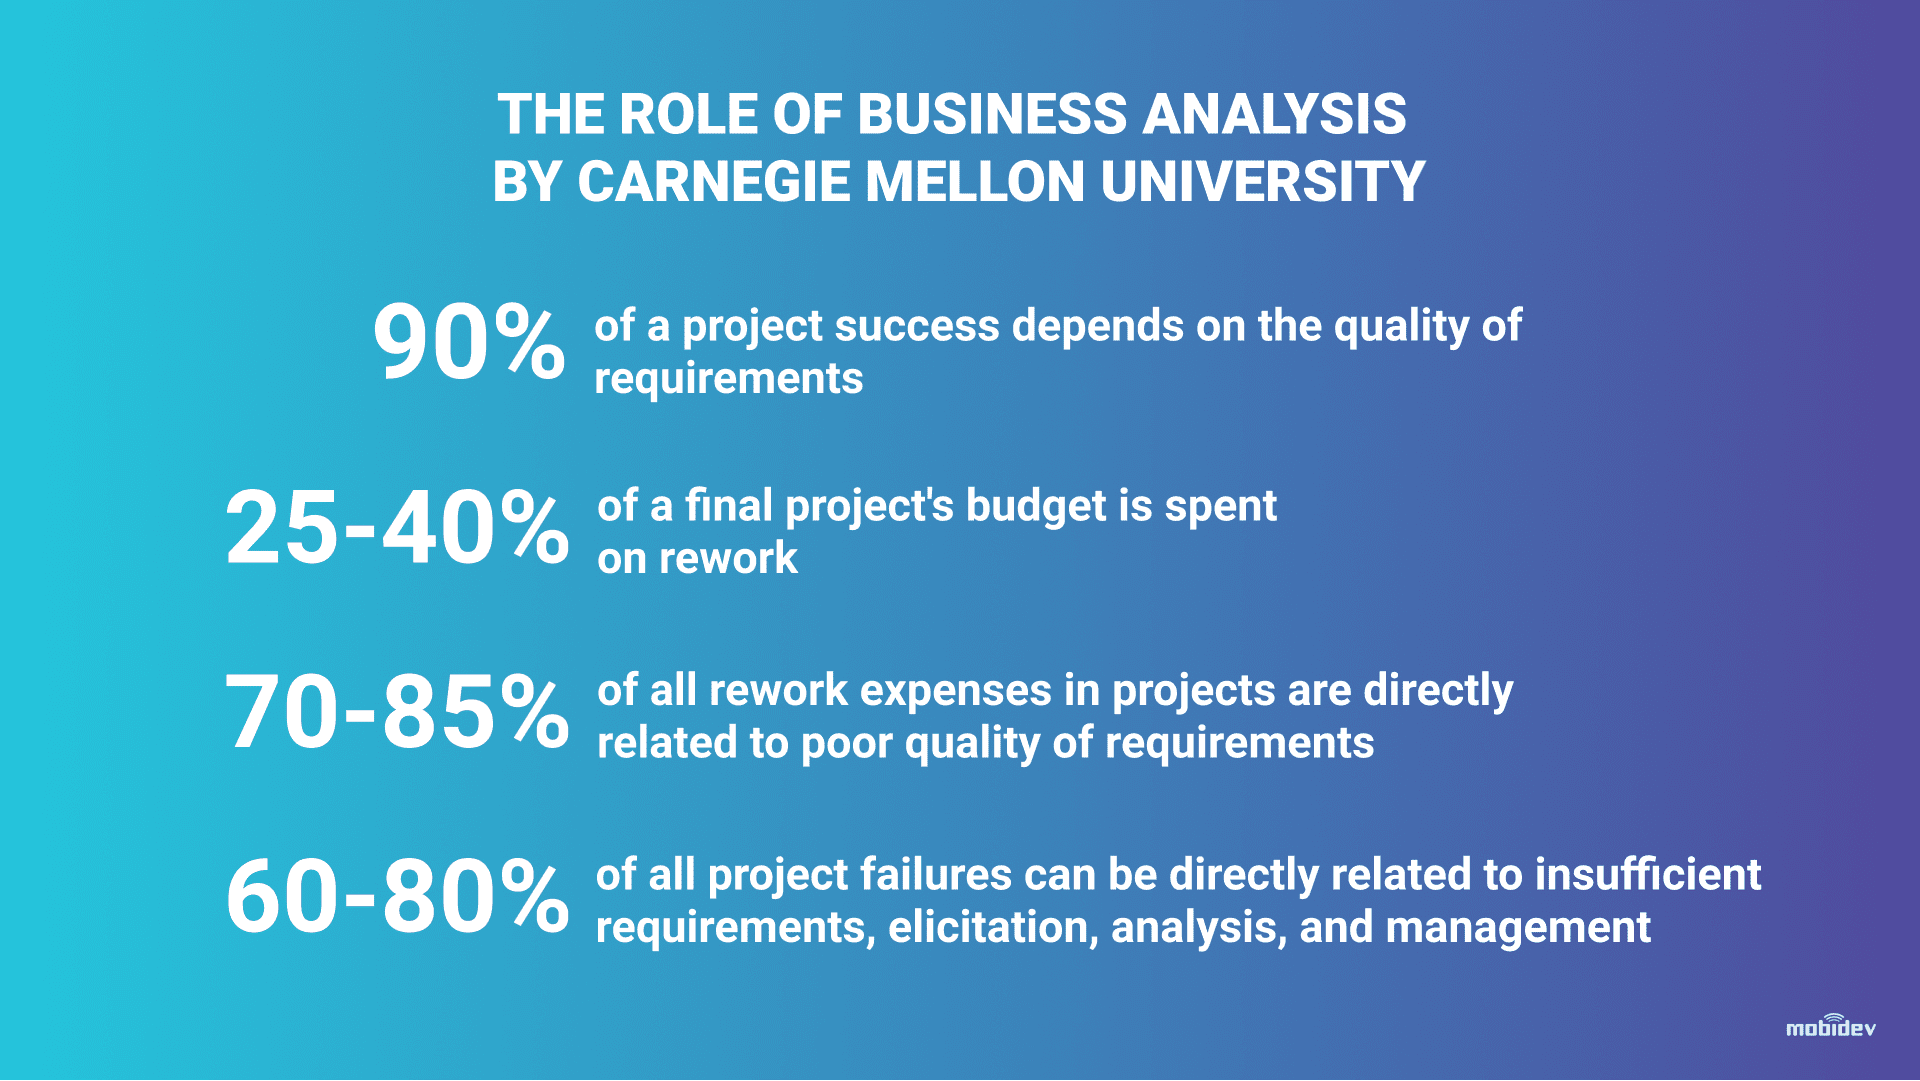 CMU Statistics about the Role of BA During the Project